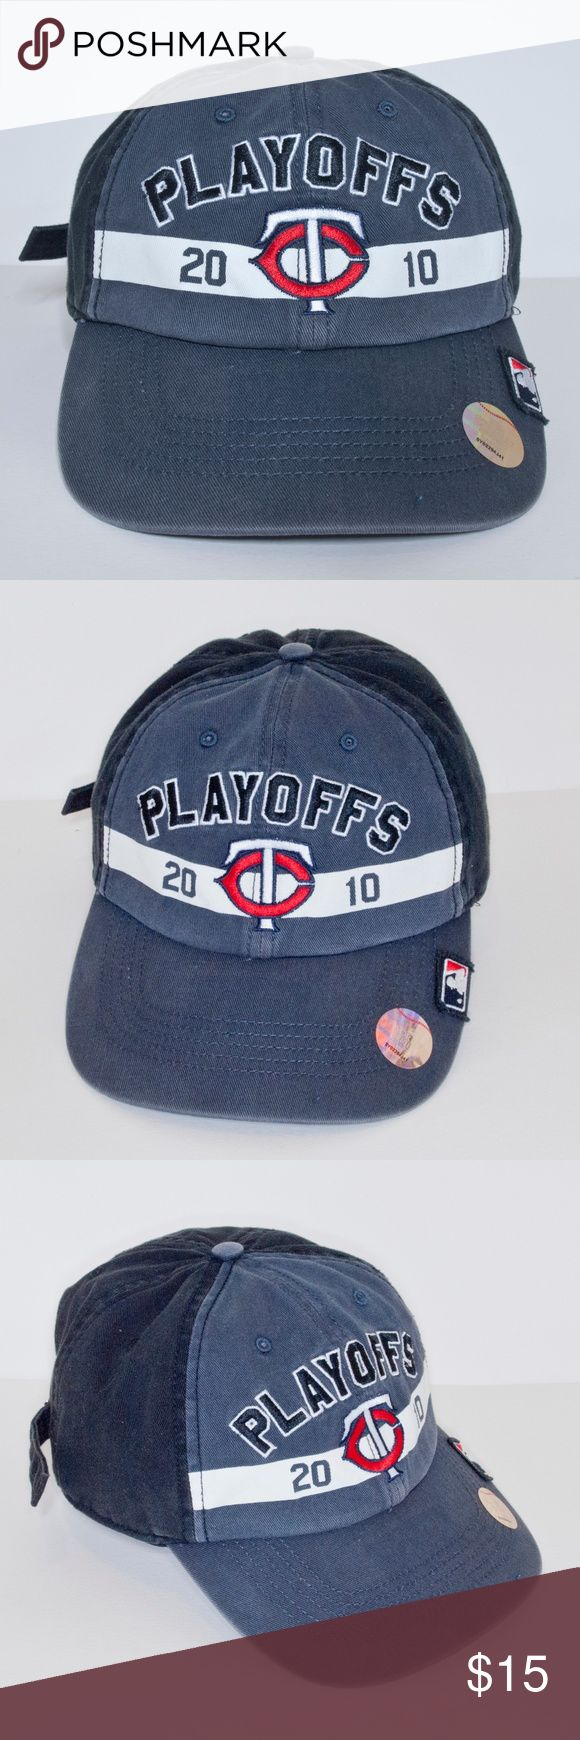 Minnesota Twins 2010 Playoff Baseball Cap in 2020